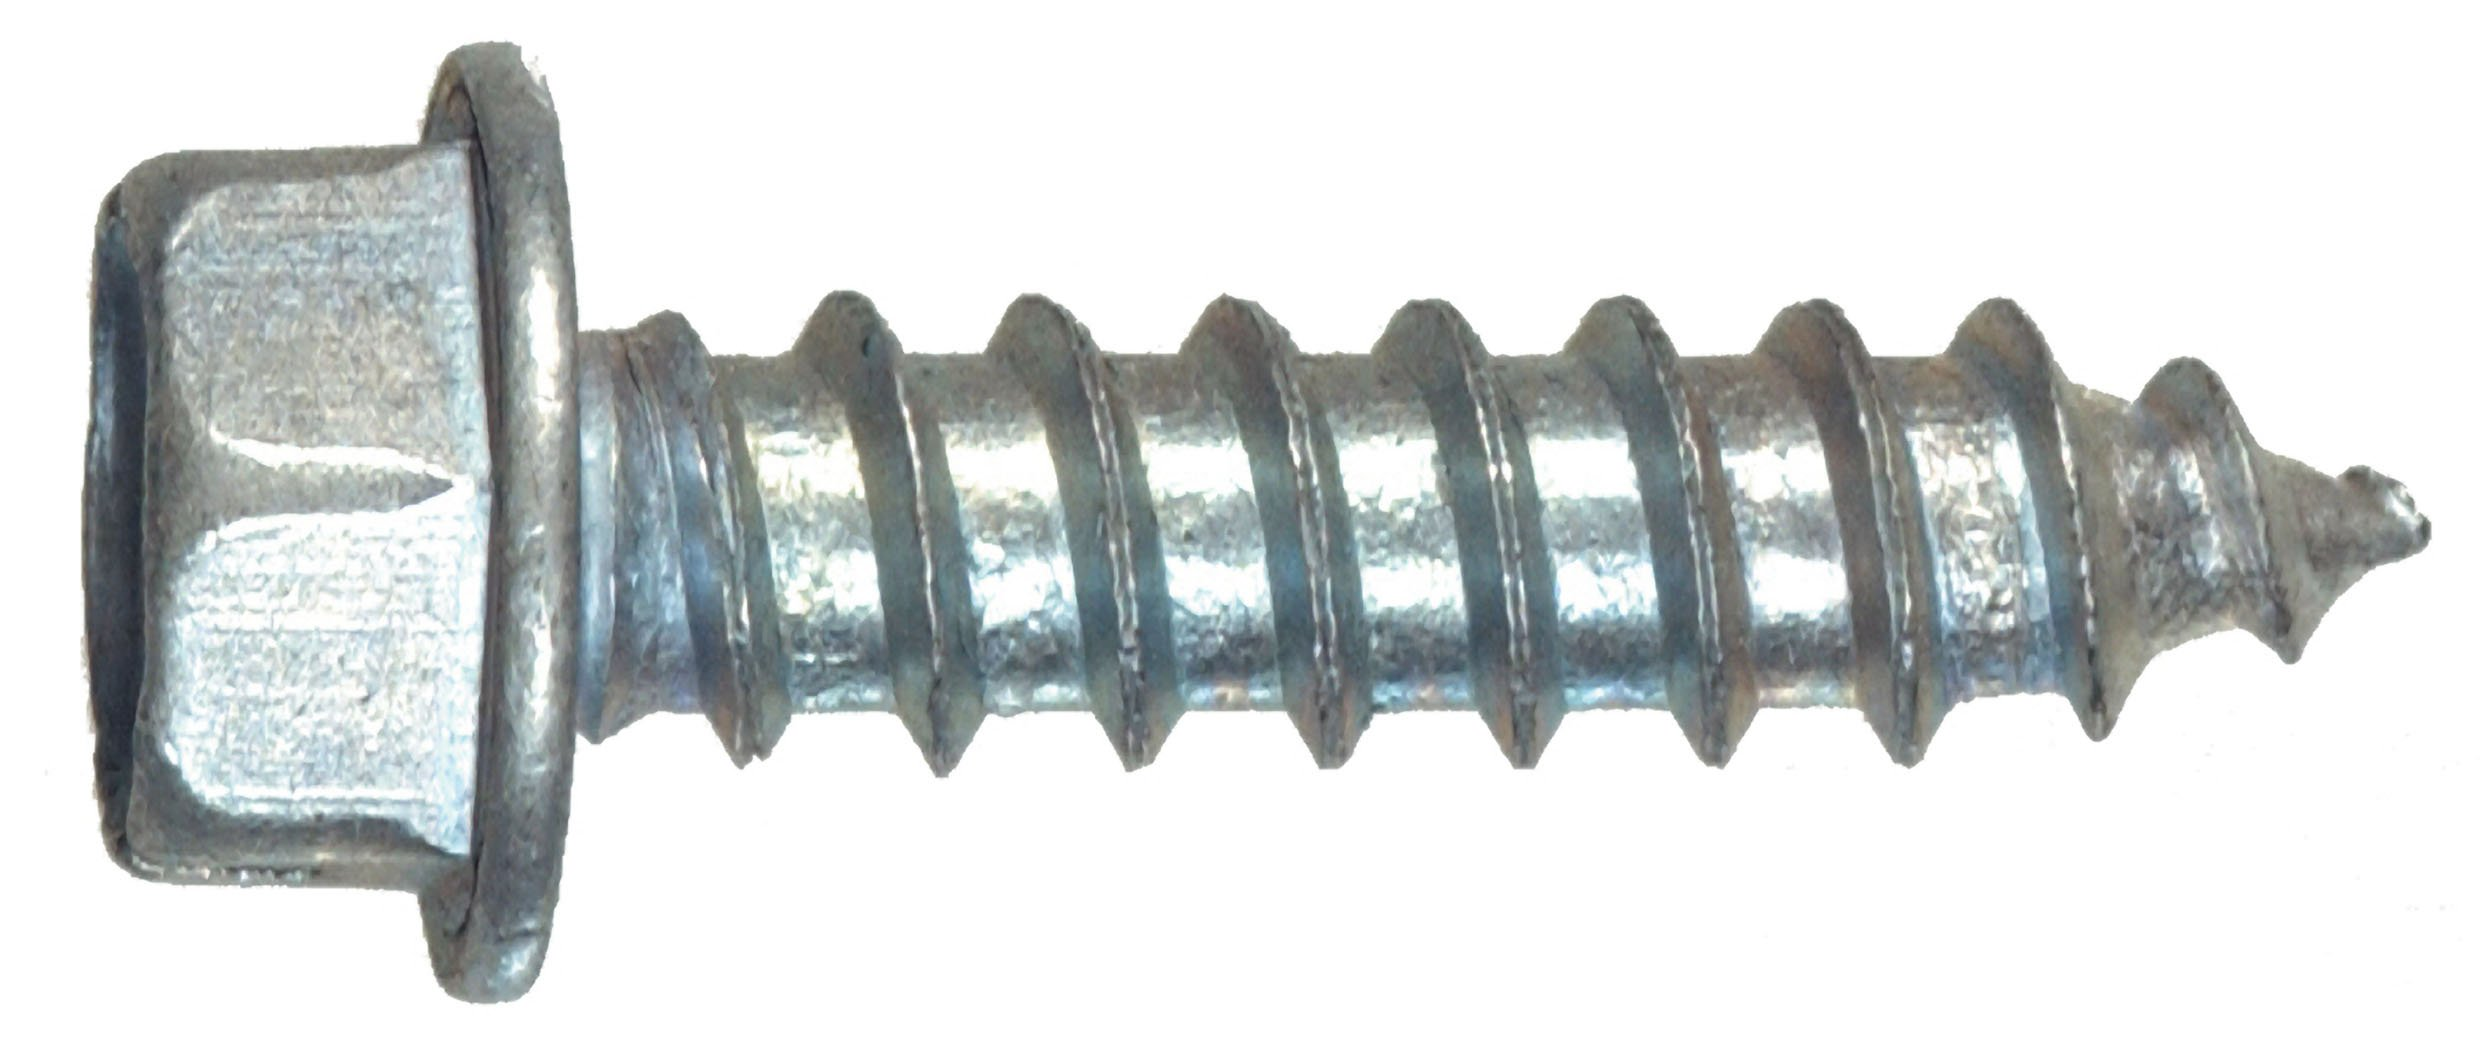 The Hillman Group The Hillman Group 3761 8 x 3/4 In. Aluminum Hex Washer Head Sheet Metal Screw (25-Pack)